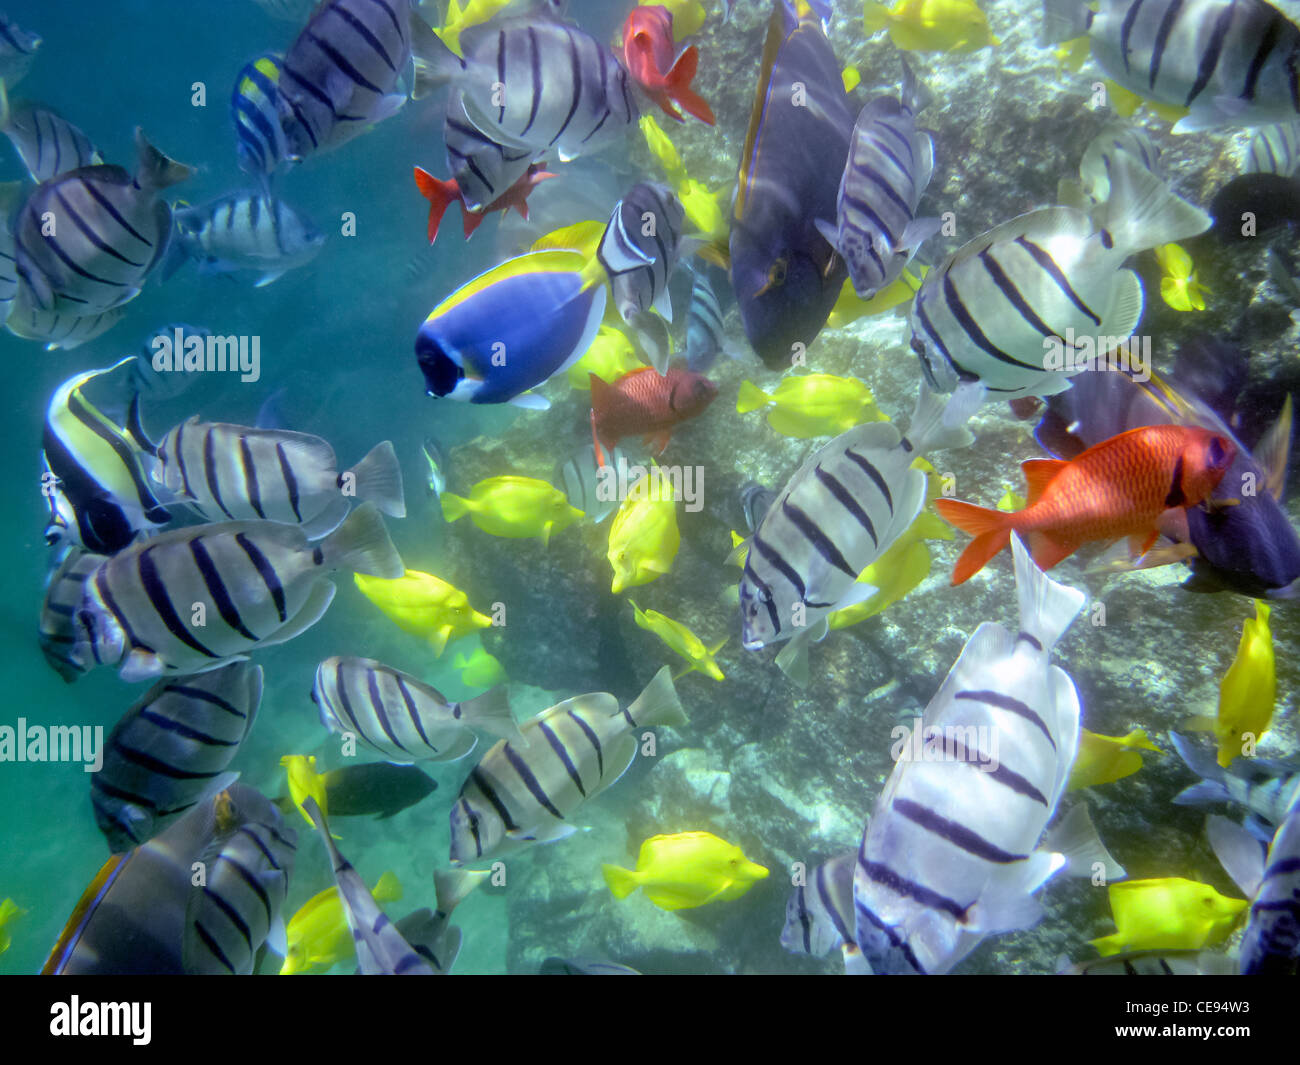 Freshwater fish in hawaii - Variety Of Tropical Fish Hawaii The Big Island Stock Image